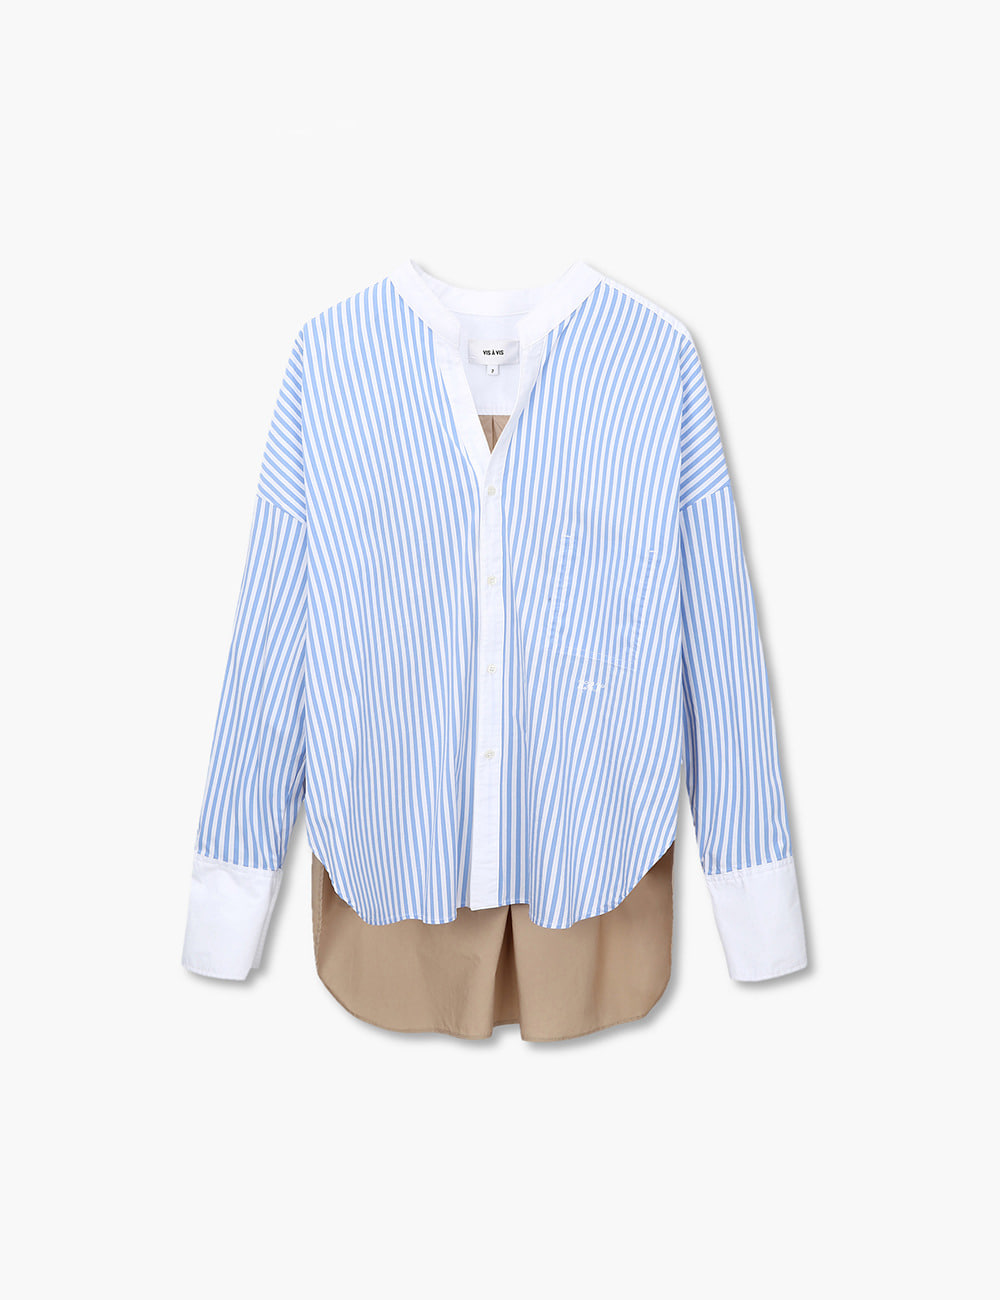 TRICOLOR BANDED COLLAR SHIRT